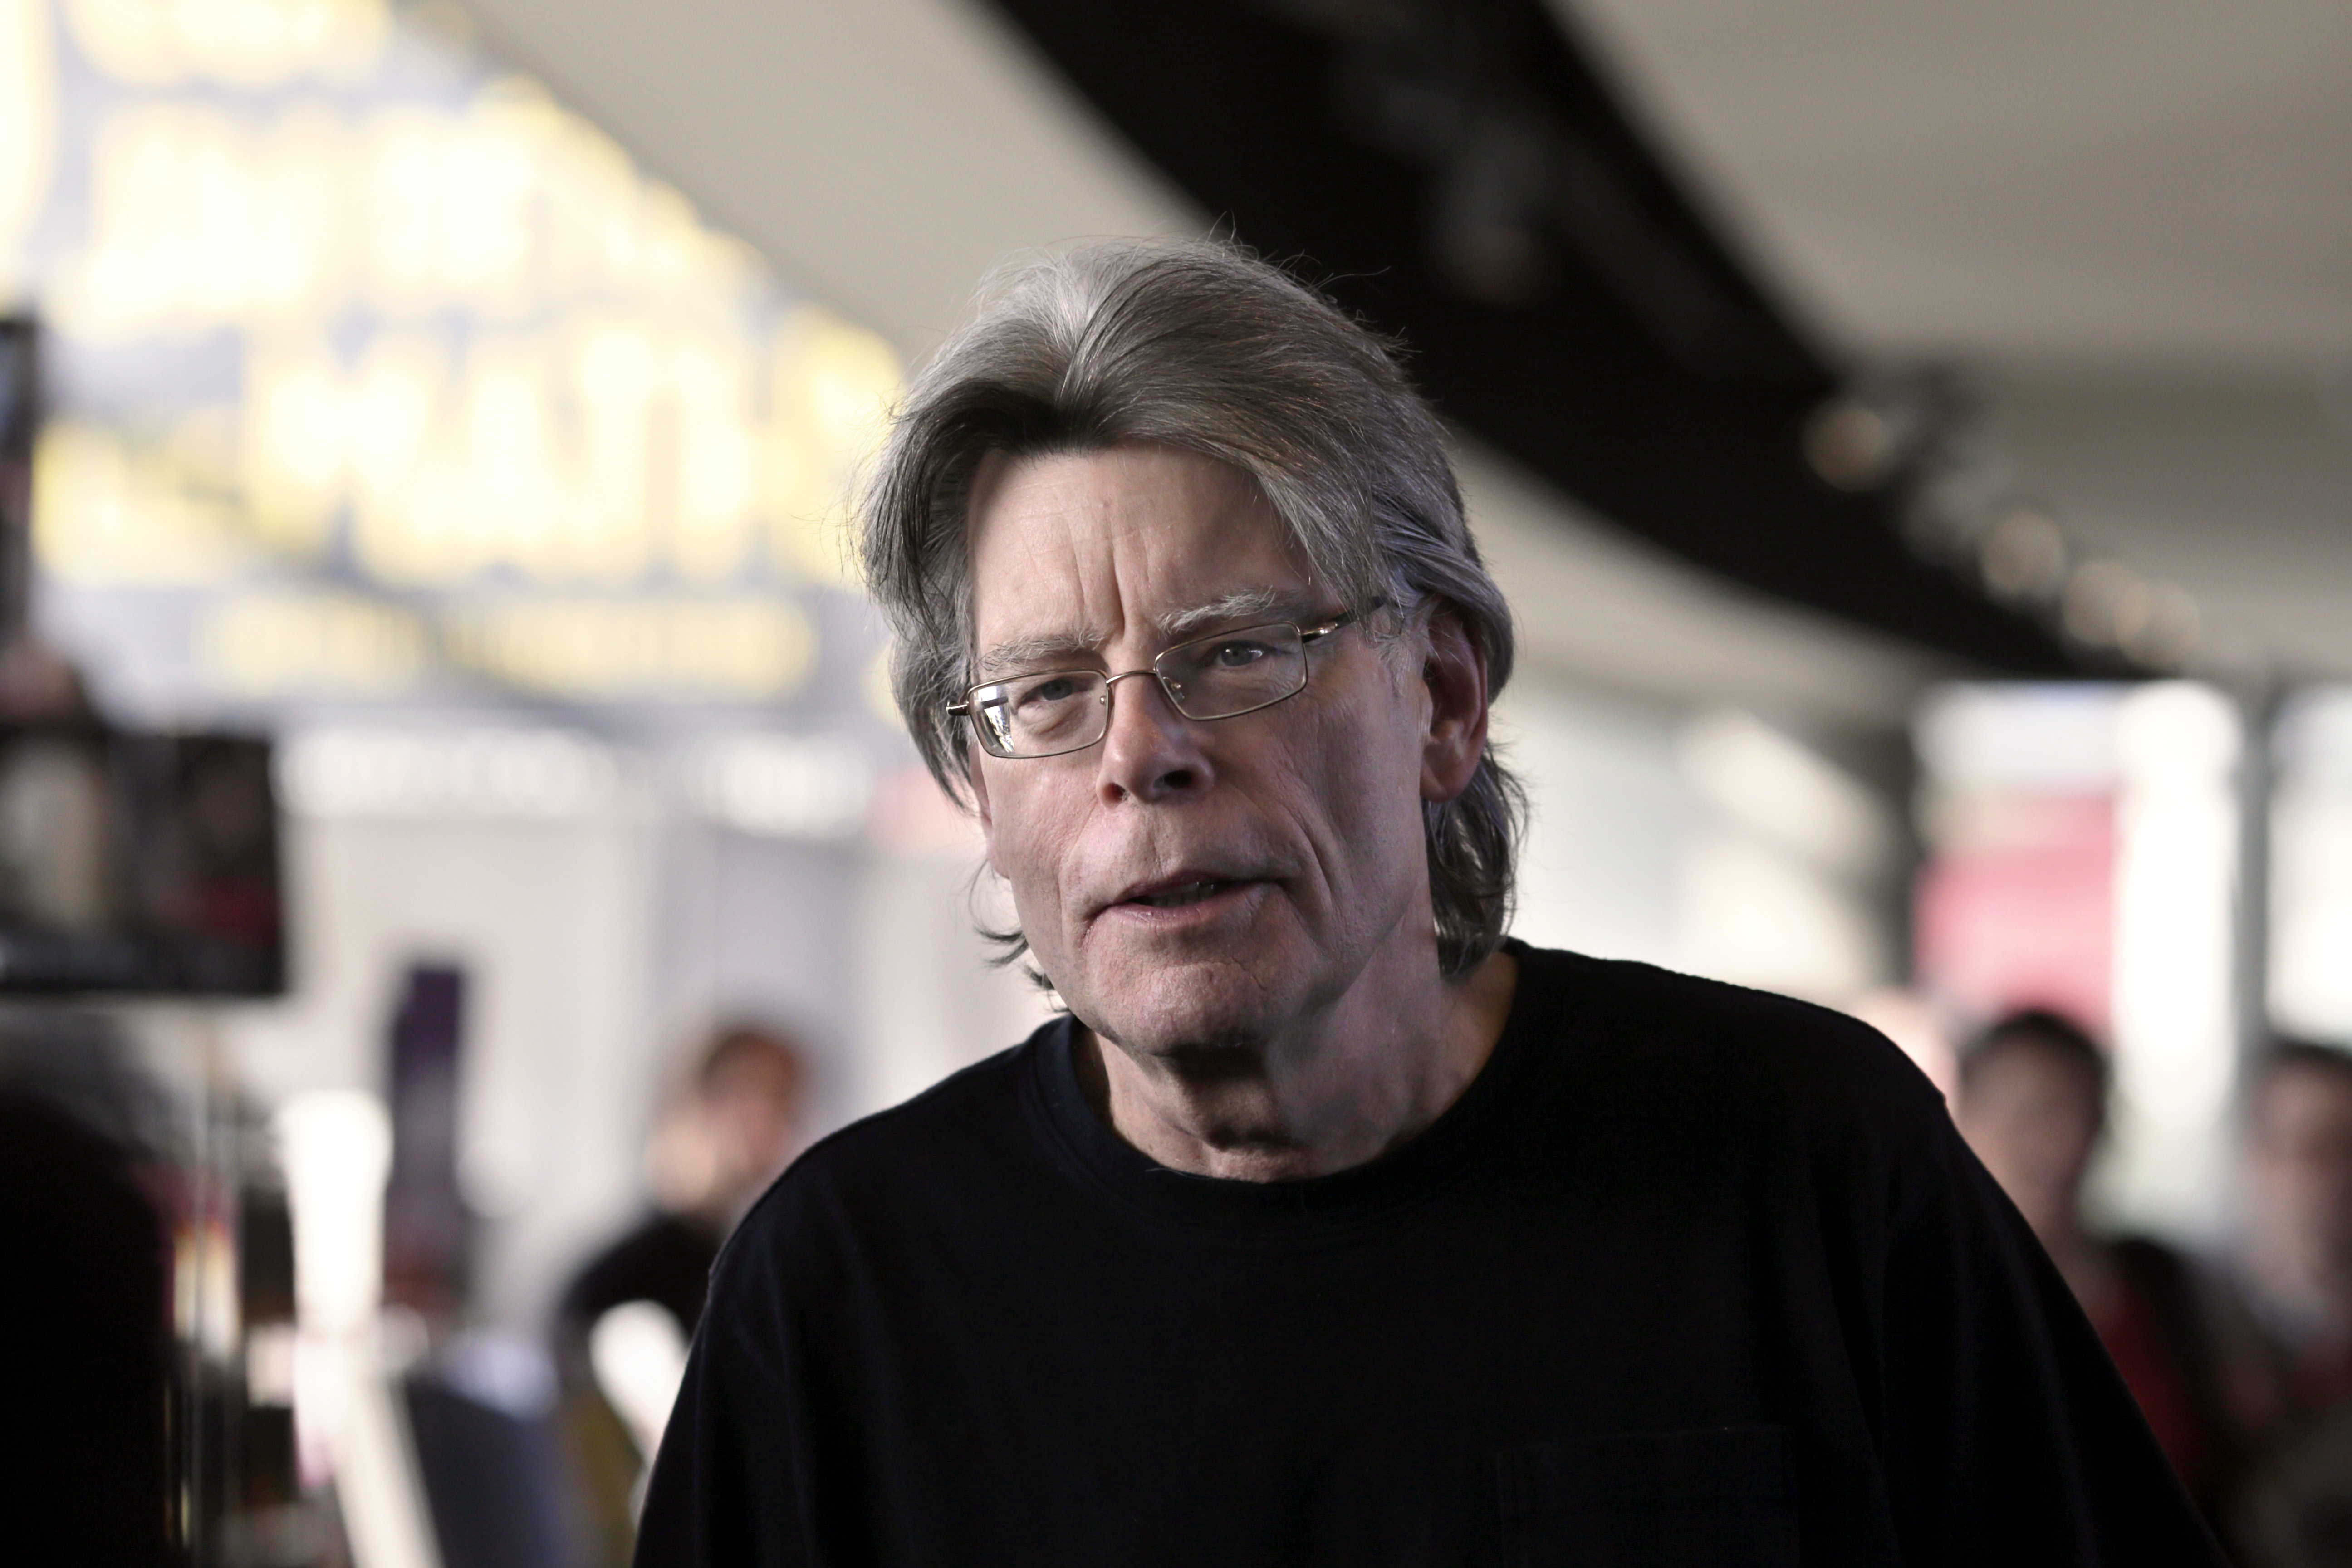 Horror author Stephen King: 'Enough with the Cubs! GO, TRIBE!'